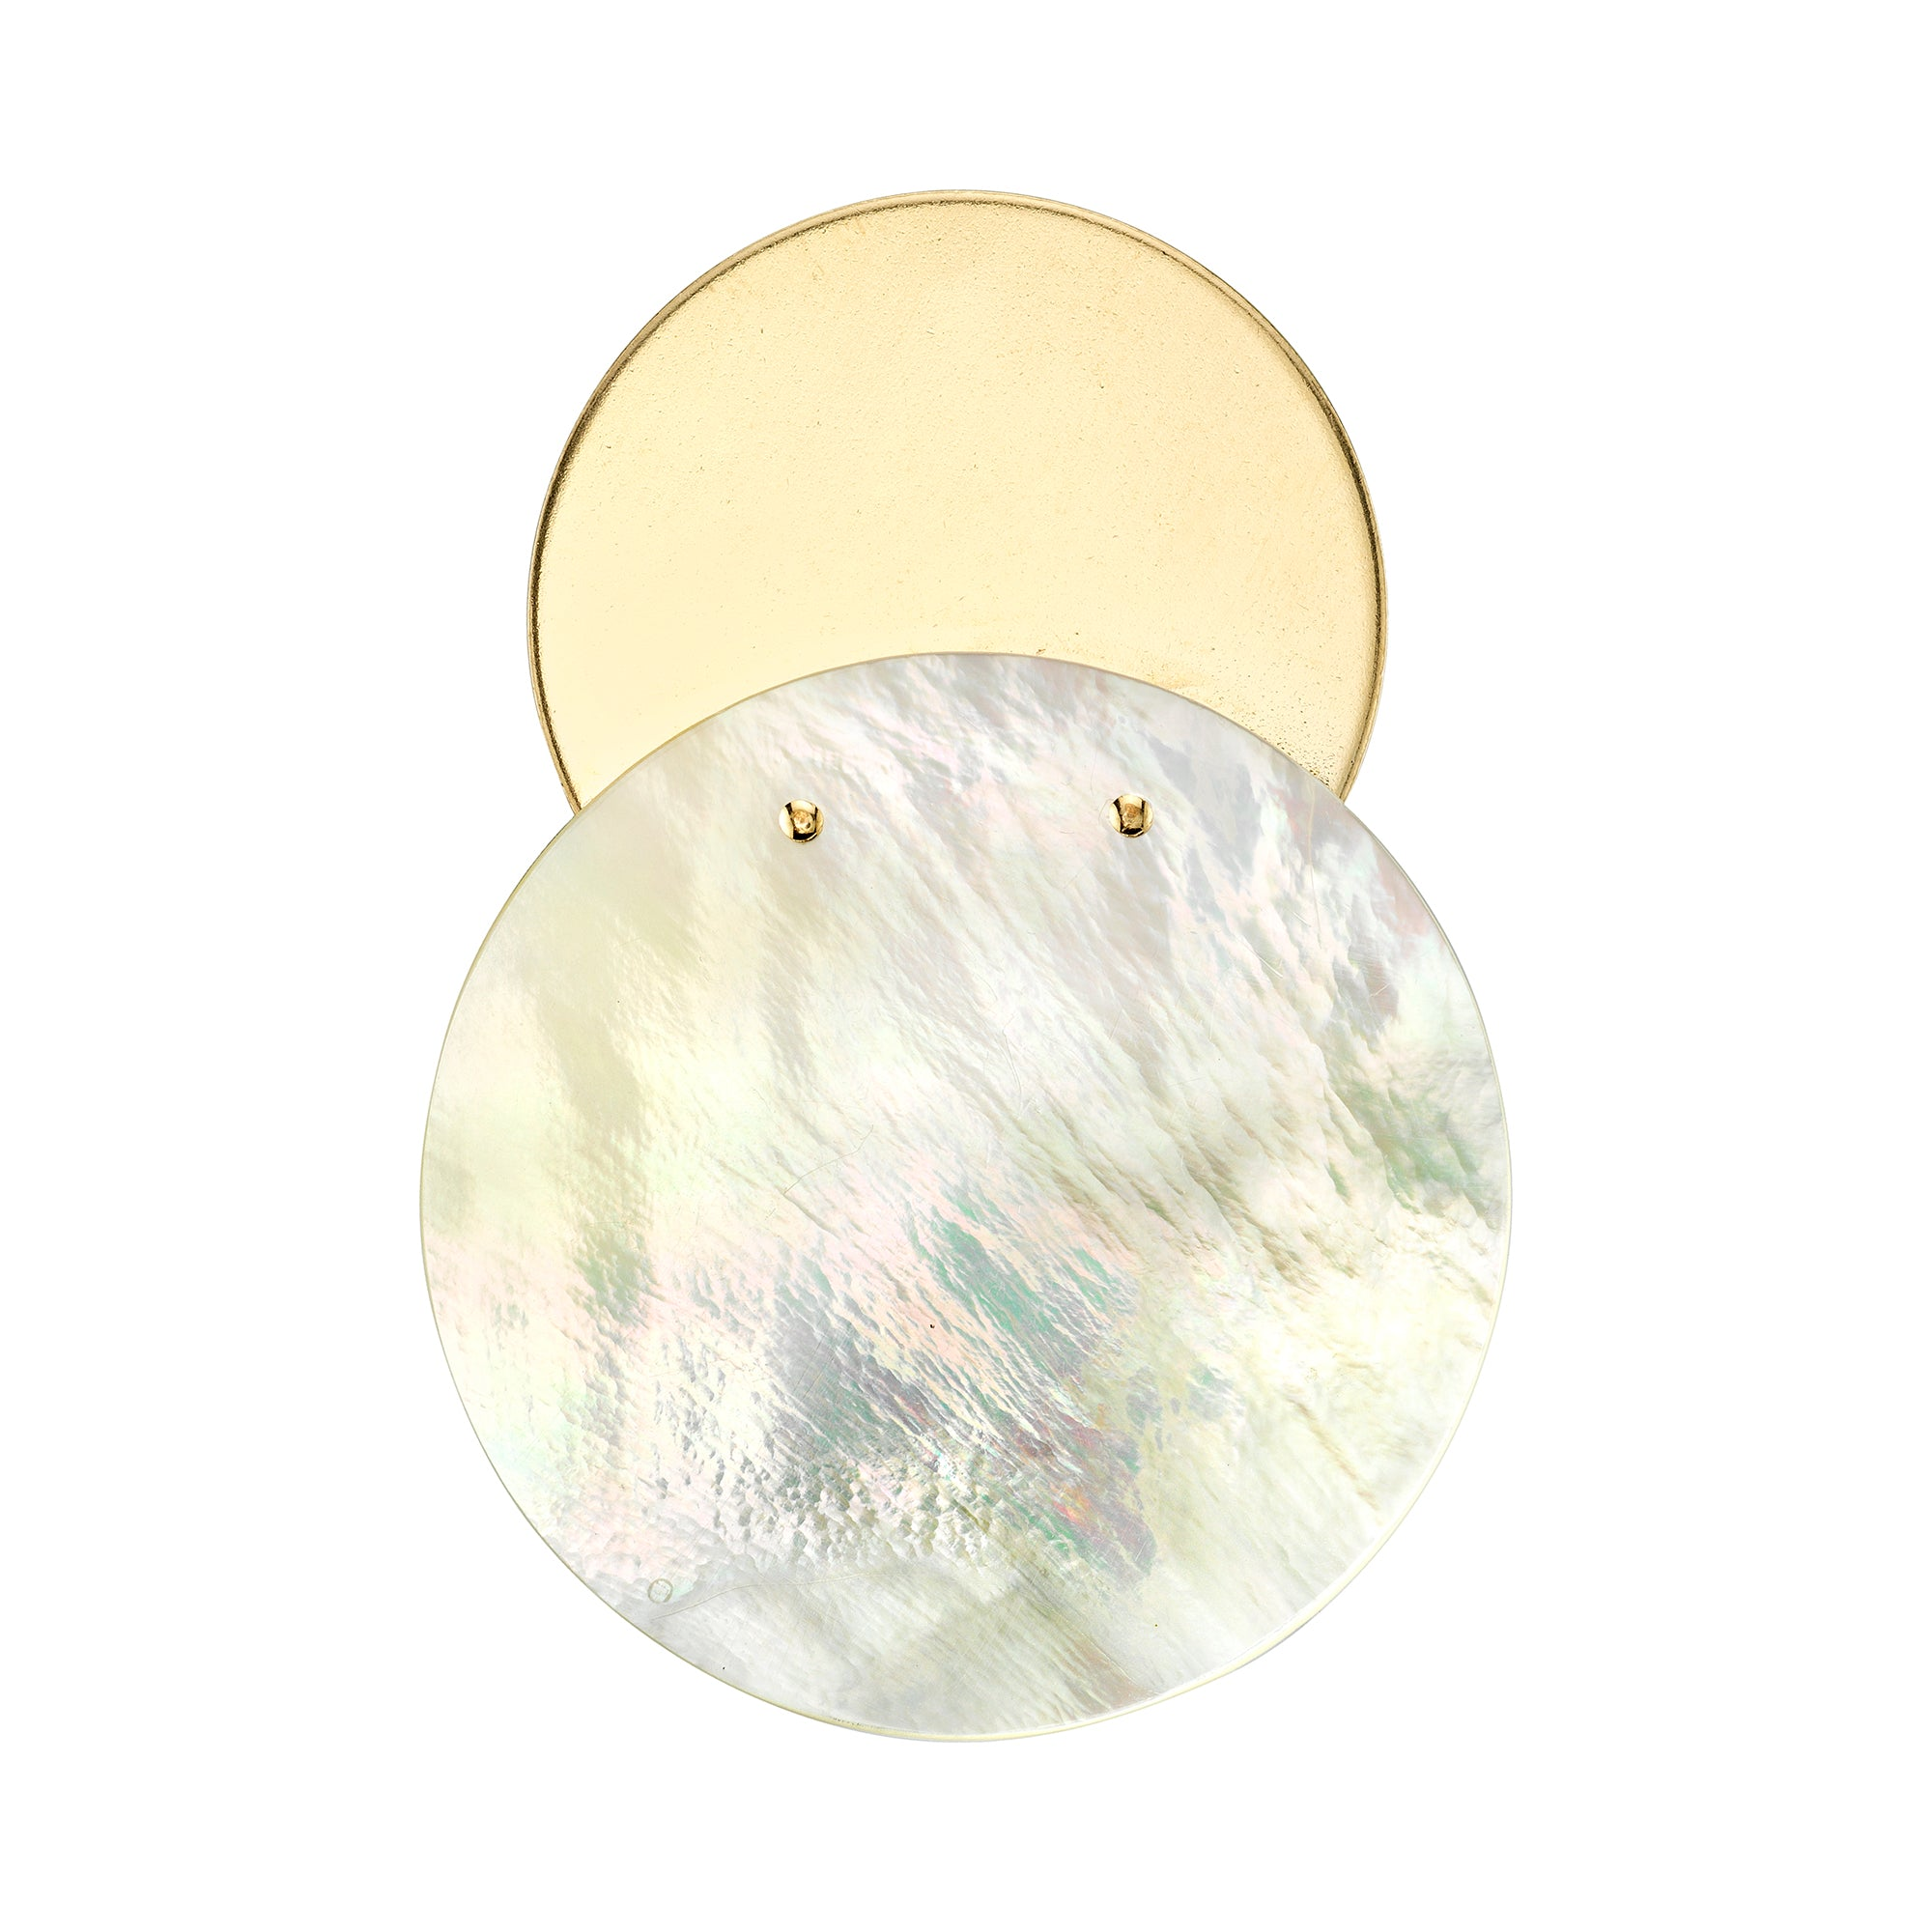 40mm Mother Earring - Gabriela Artigas